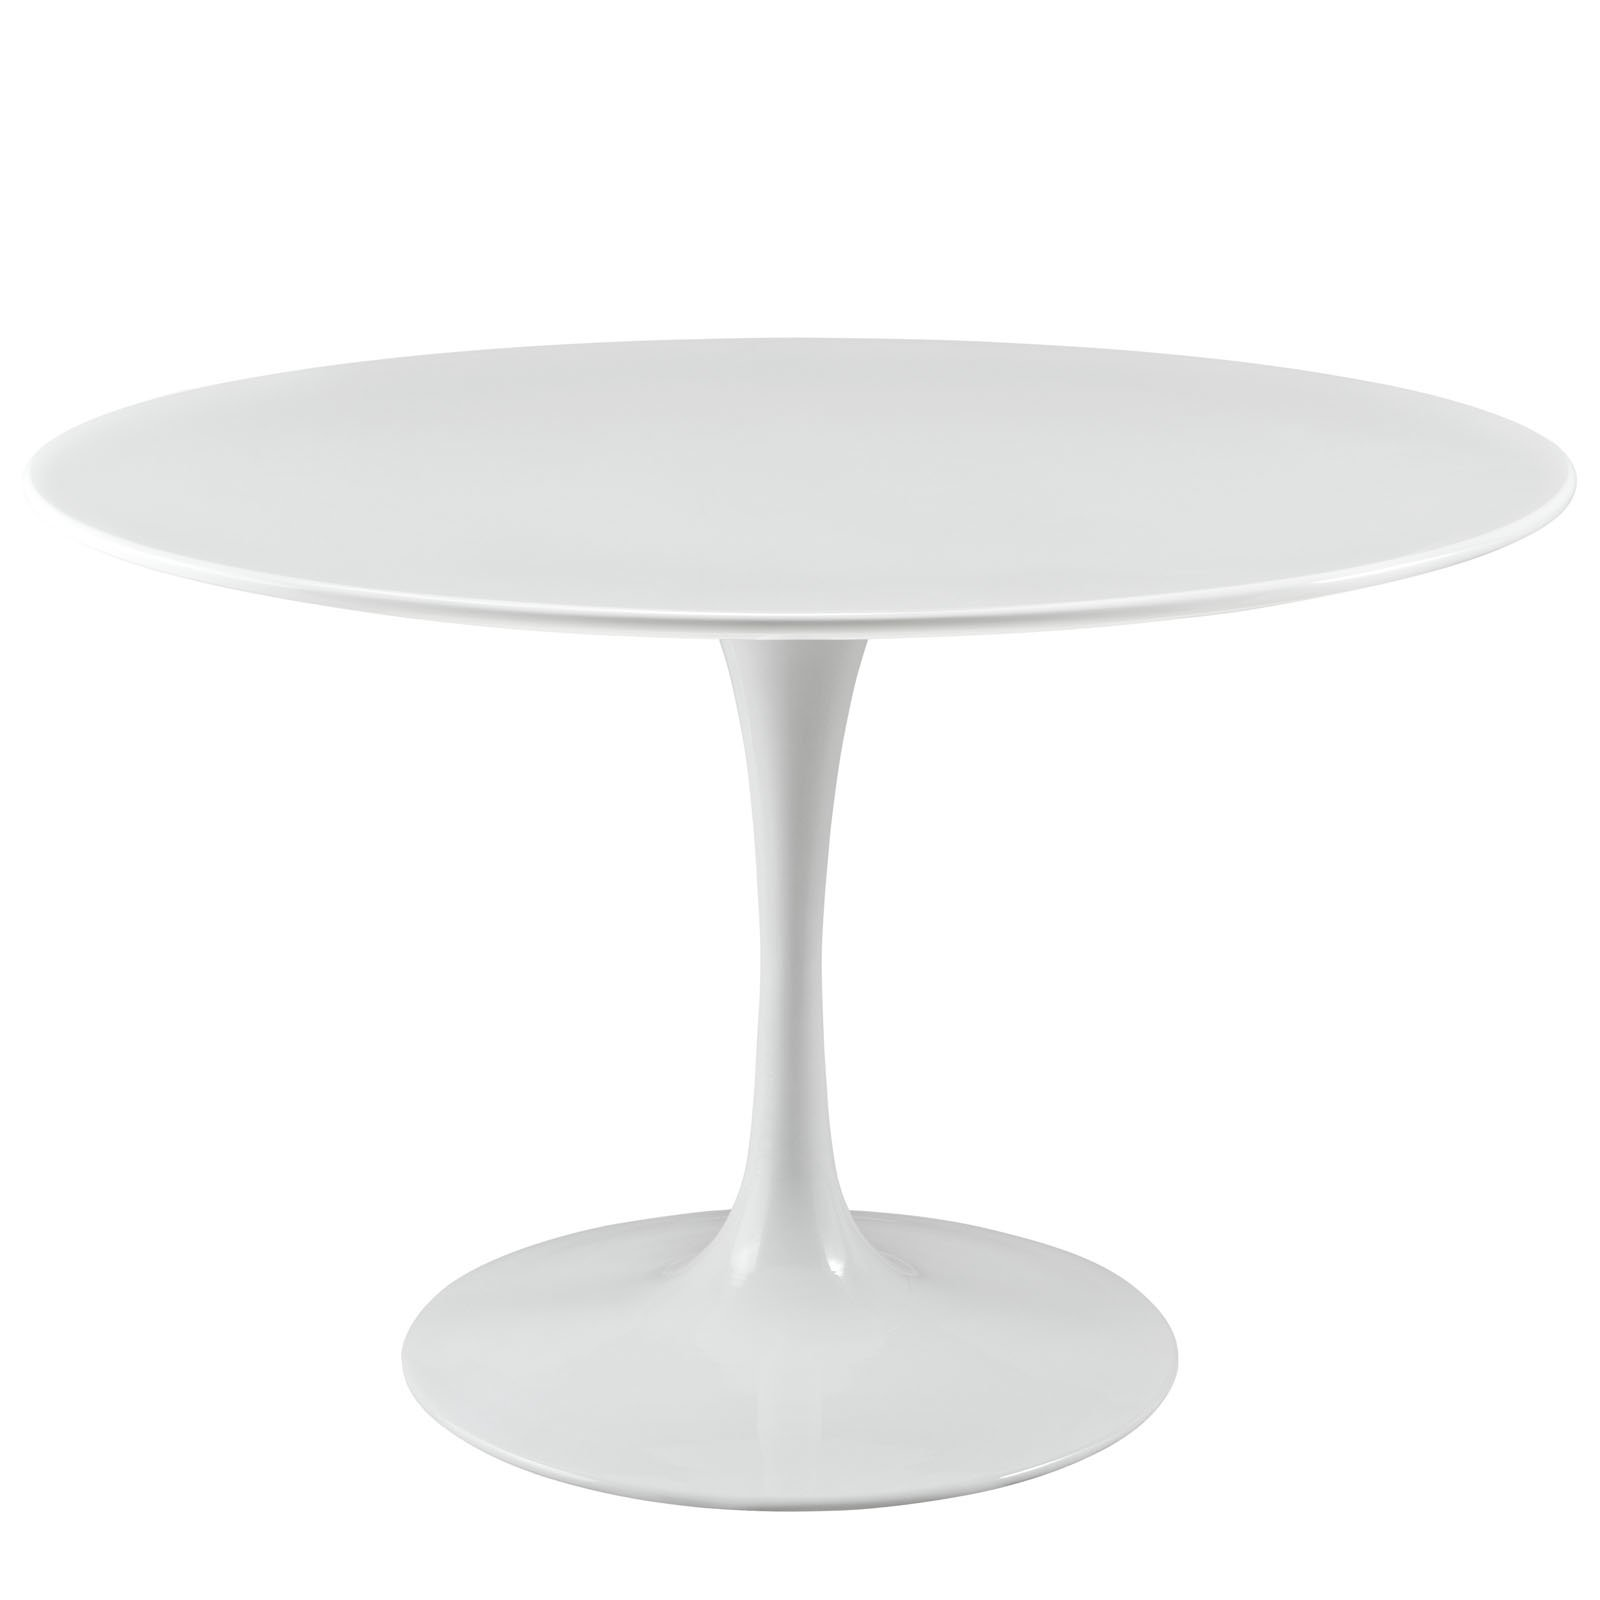 Modway Lippa 47'' Mid-Century Modern Kitchen and Dining Table with Round Top and Pedestal Base in White